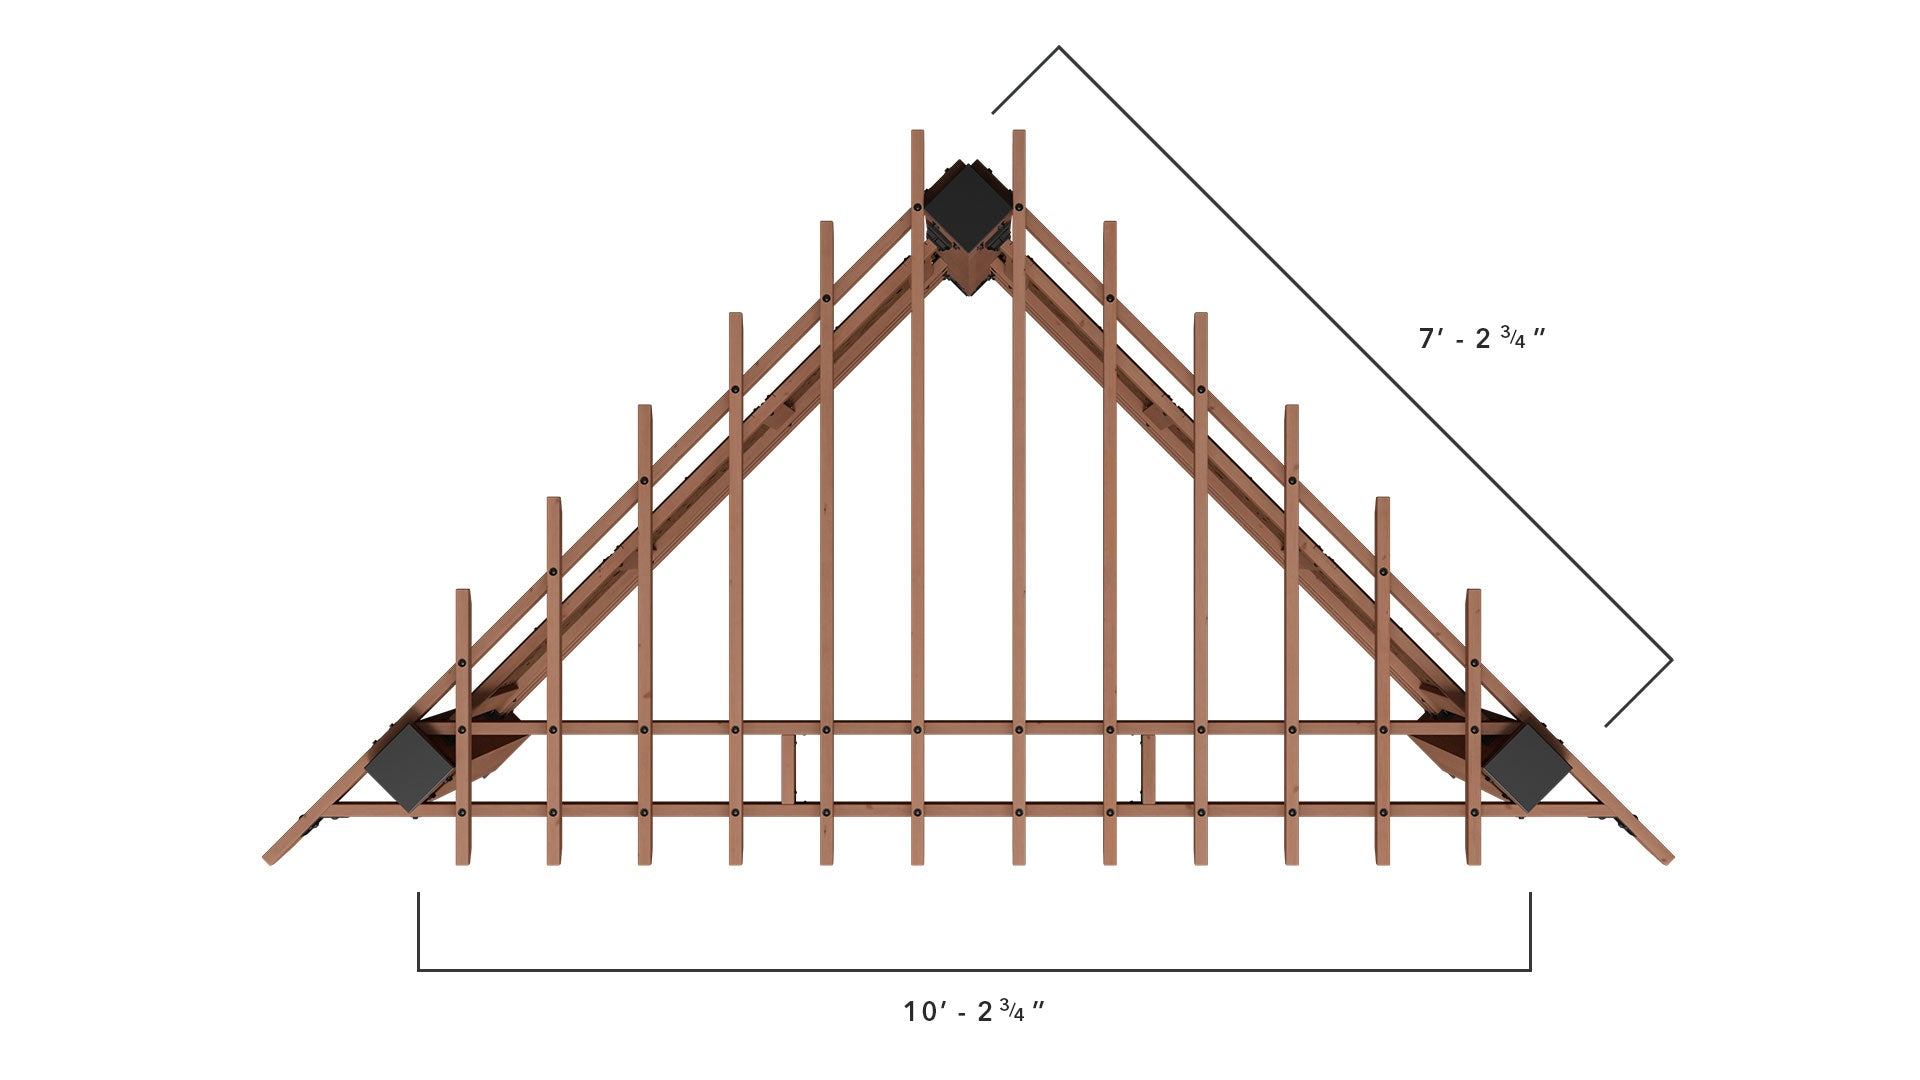 Cabana Pergola Dimensions - Top View